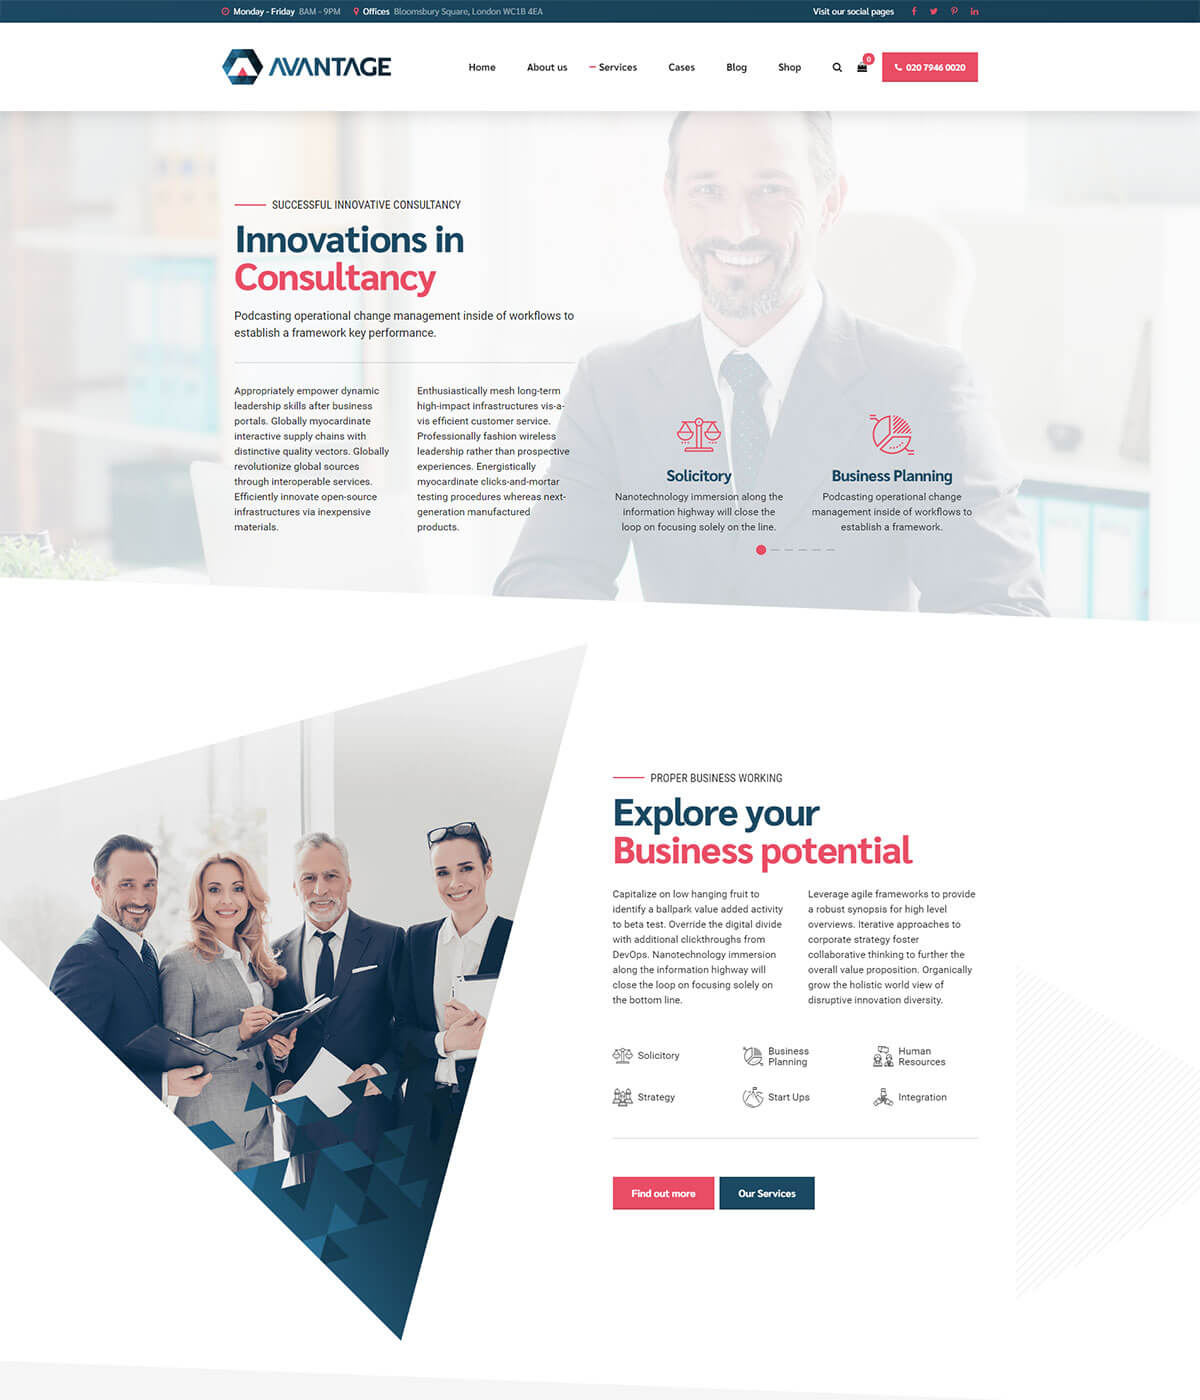 https://avantage.bold-themes.com/wp-content/uploads/2019/05/business-09-solutions.jpg